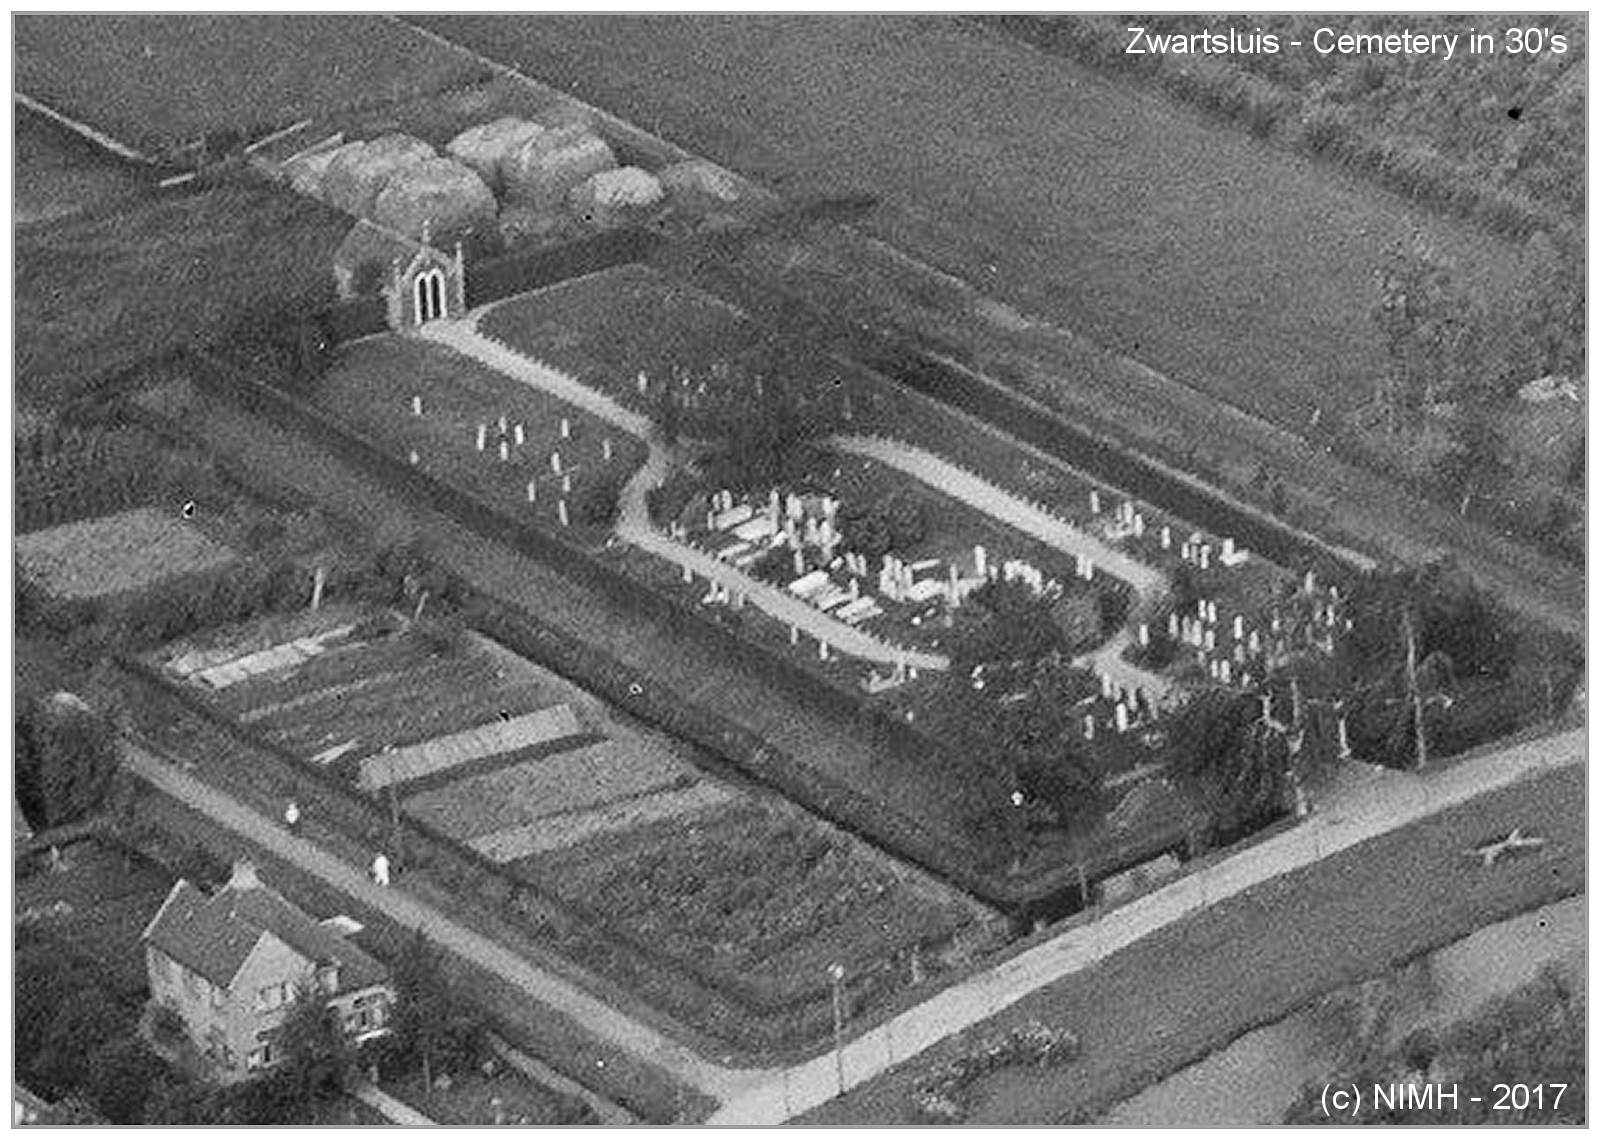 Cemetery Zwartsluis in the 30's - via NIMH